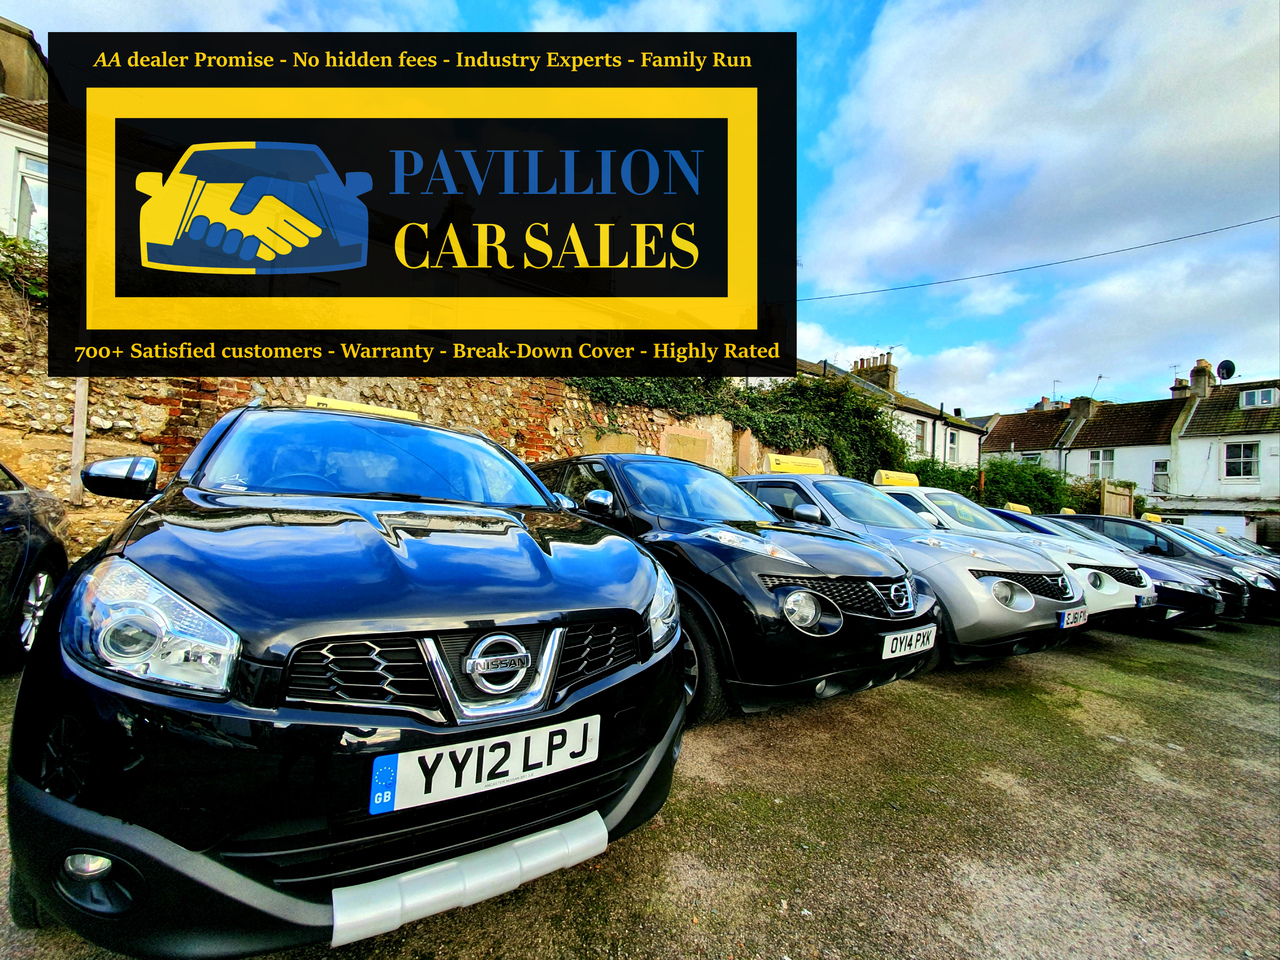 The best quality cars for sale in brighton are available at Pavillion Car Sales